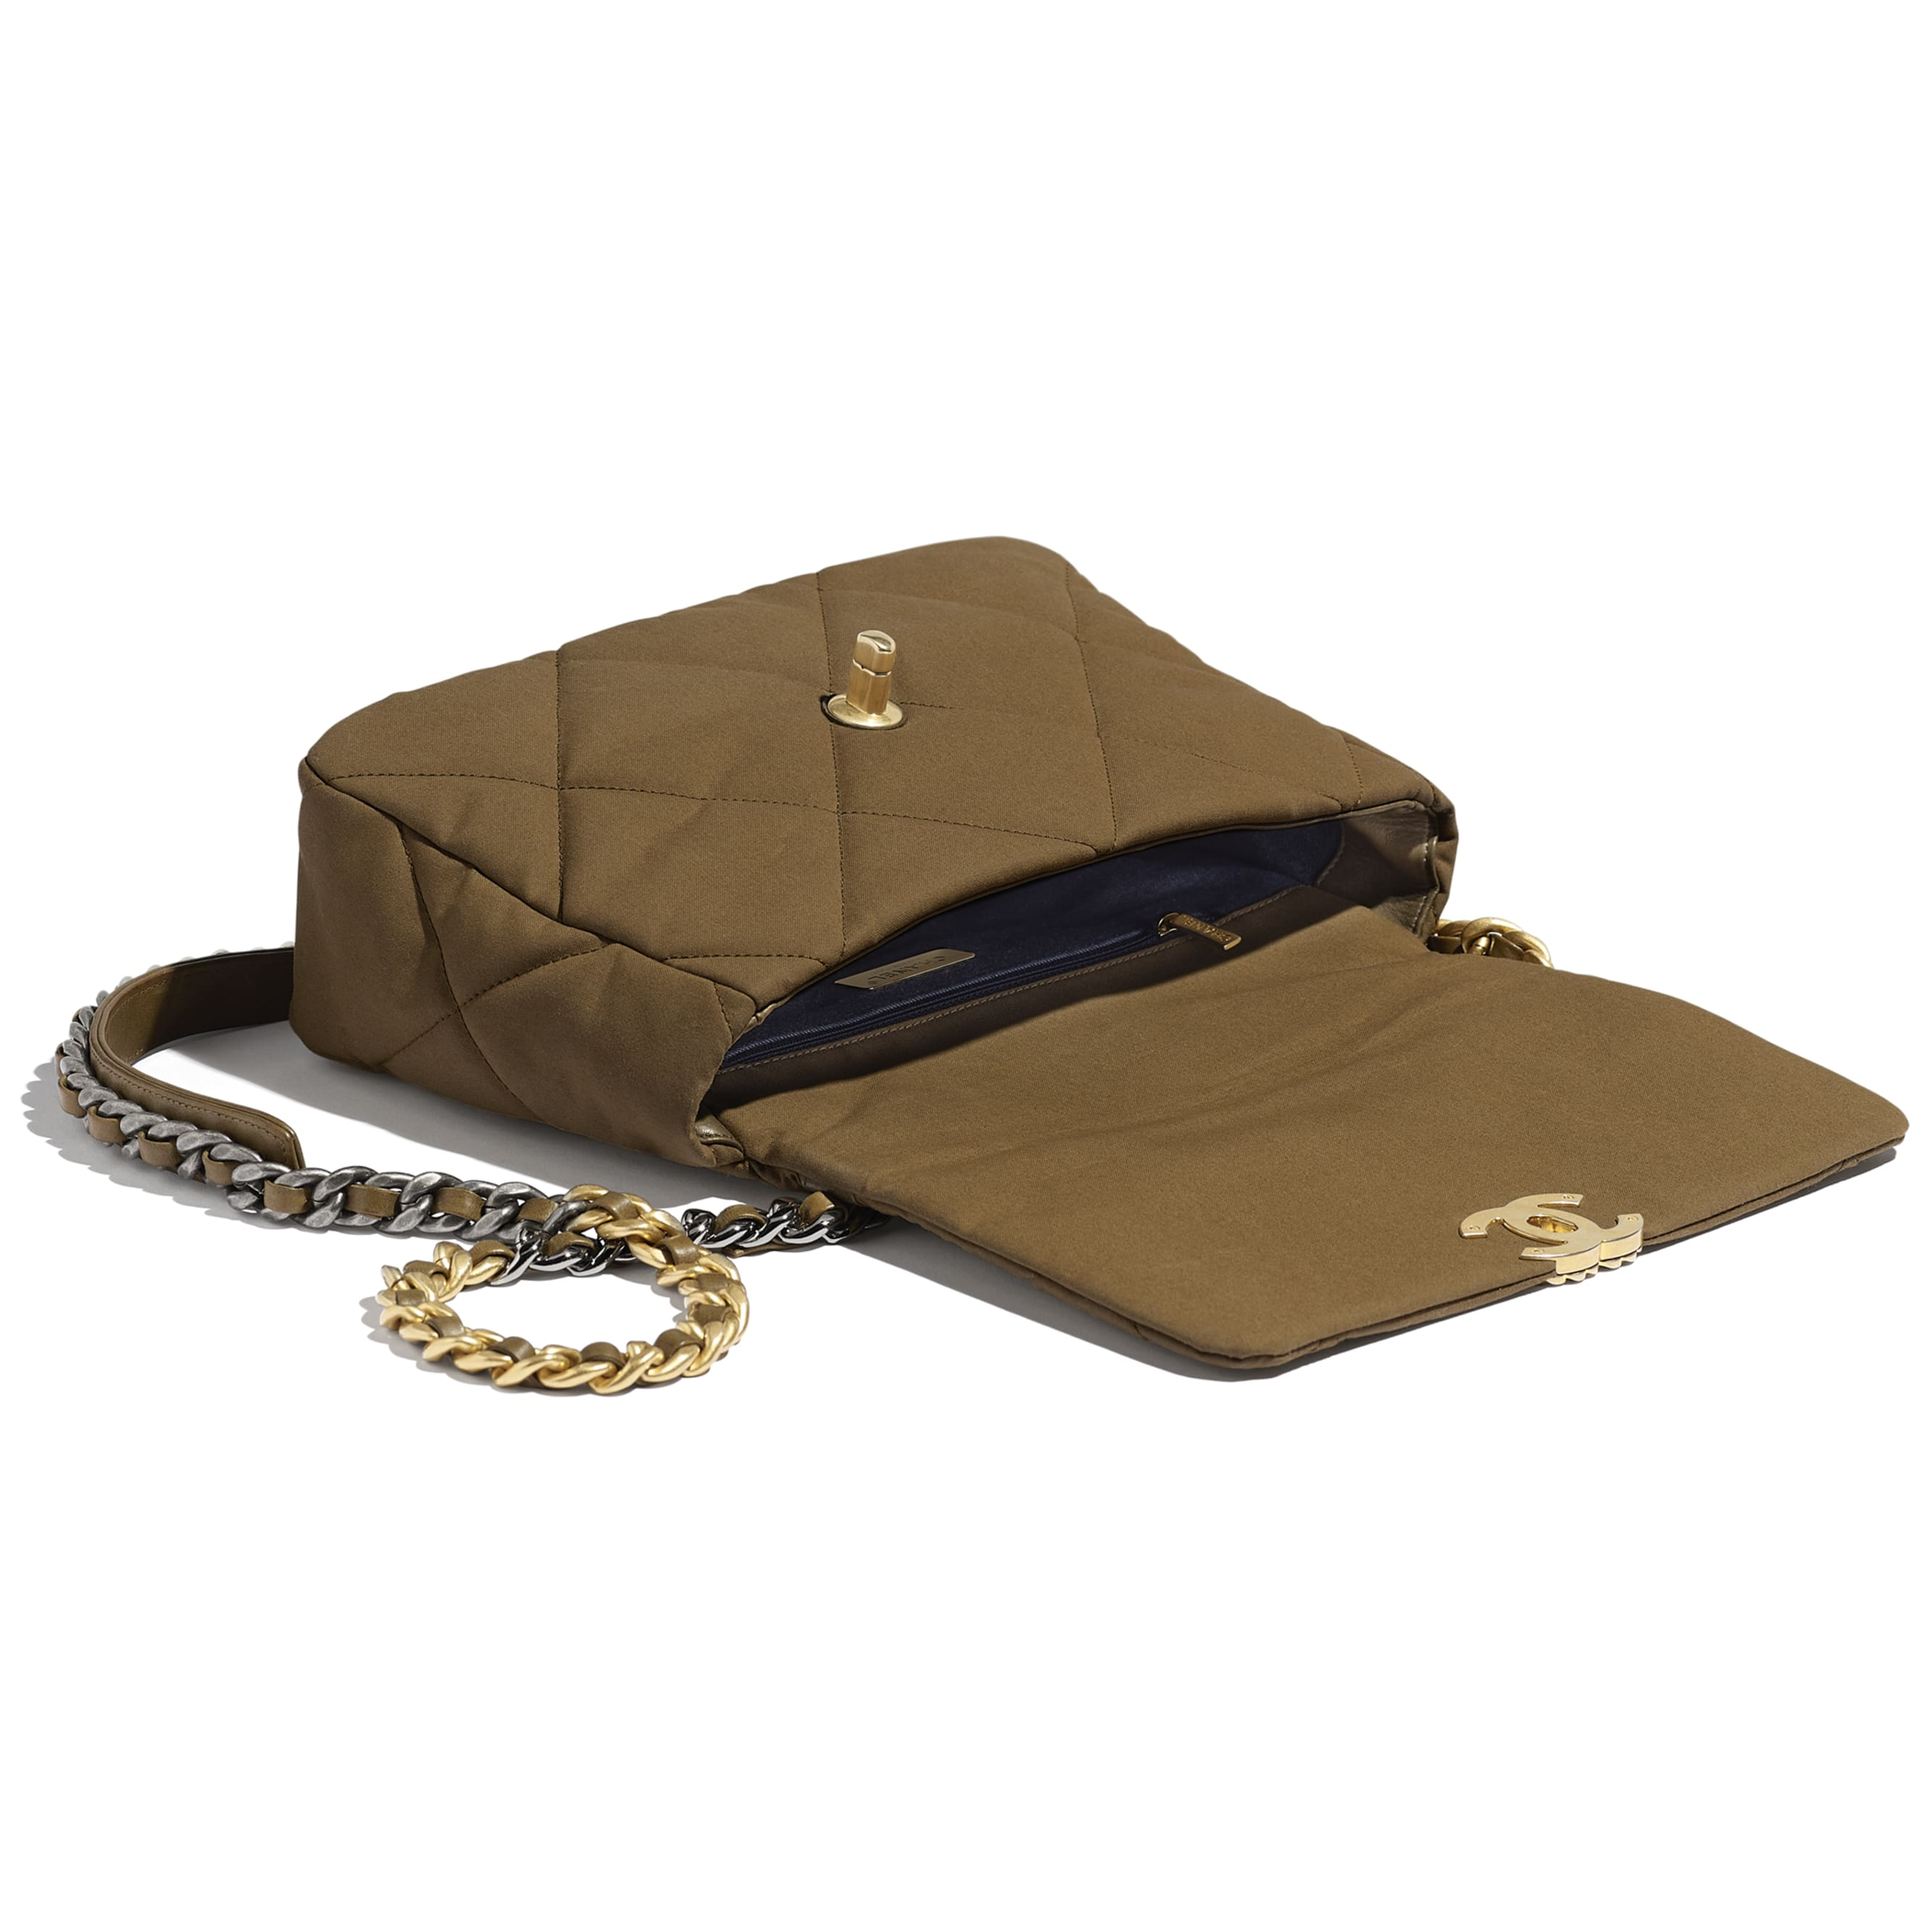 CHANEL 19 Large Flap Bag - Bronze - Cotton Canvas, Calfskin, Gold-Tone, Silver-Tone & Ruthenium-Finish Metal - Other view - see standard sized version